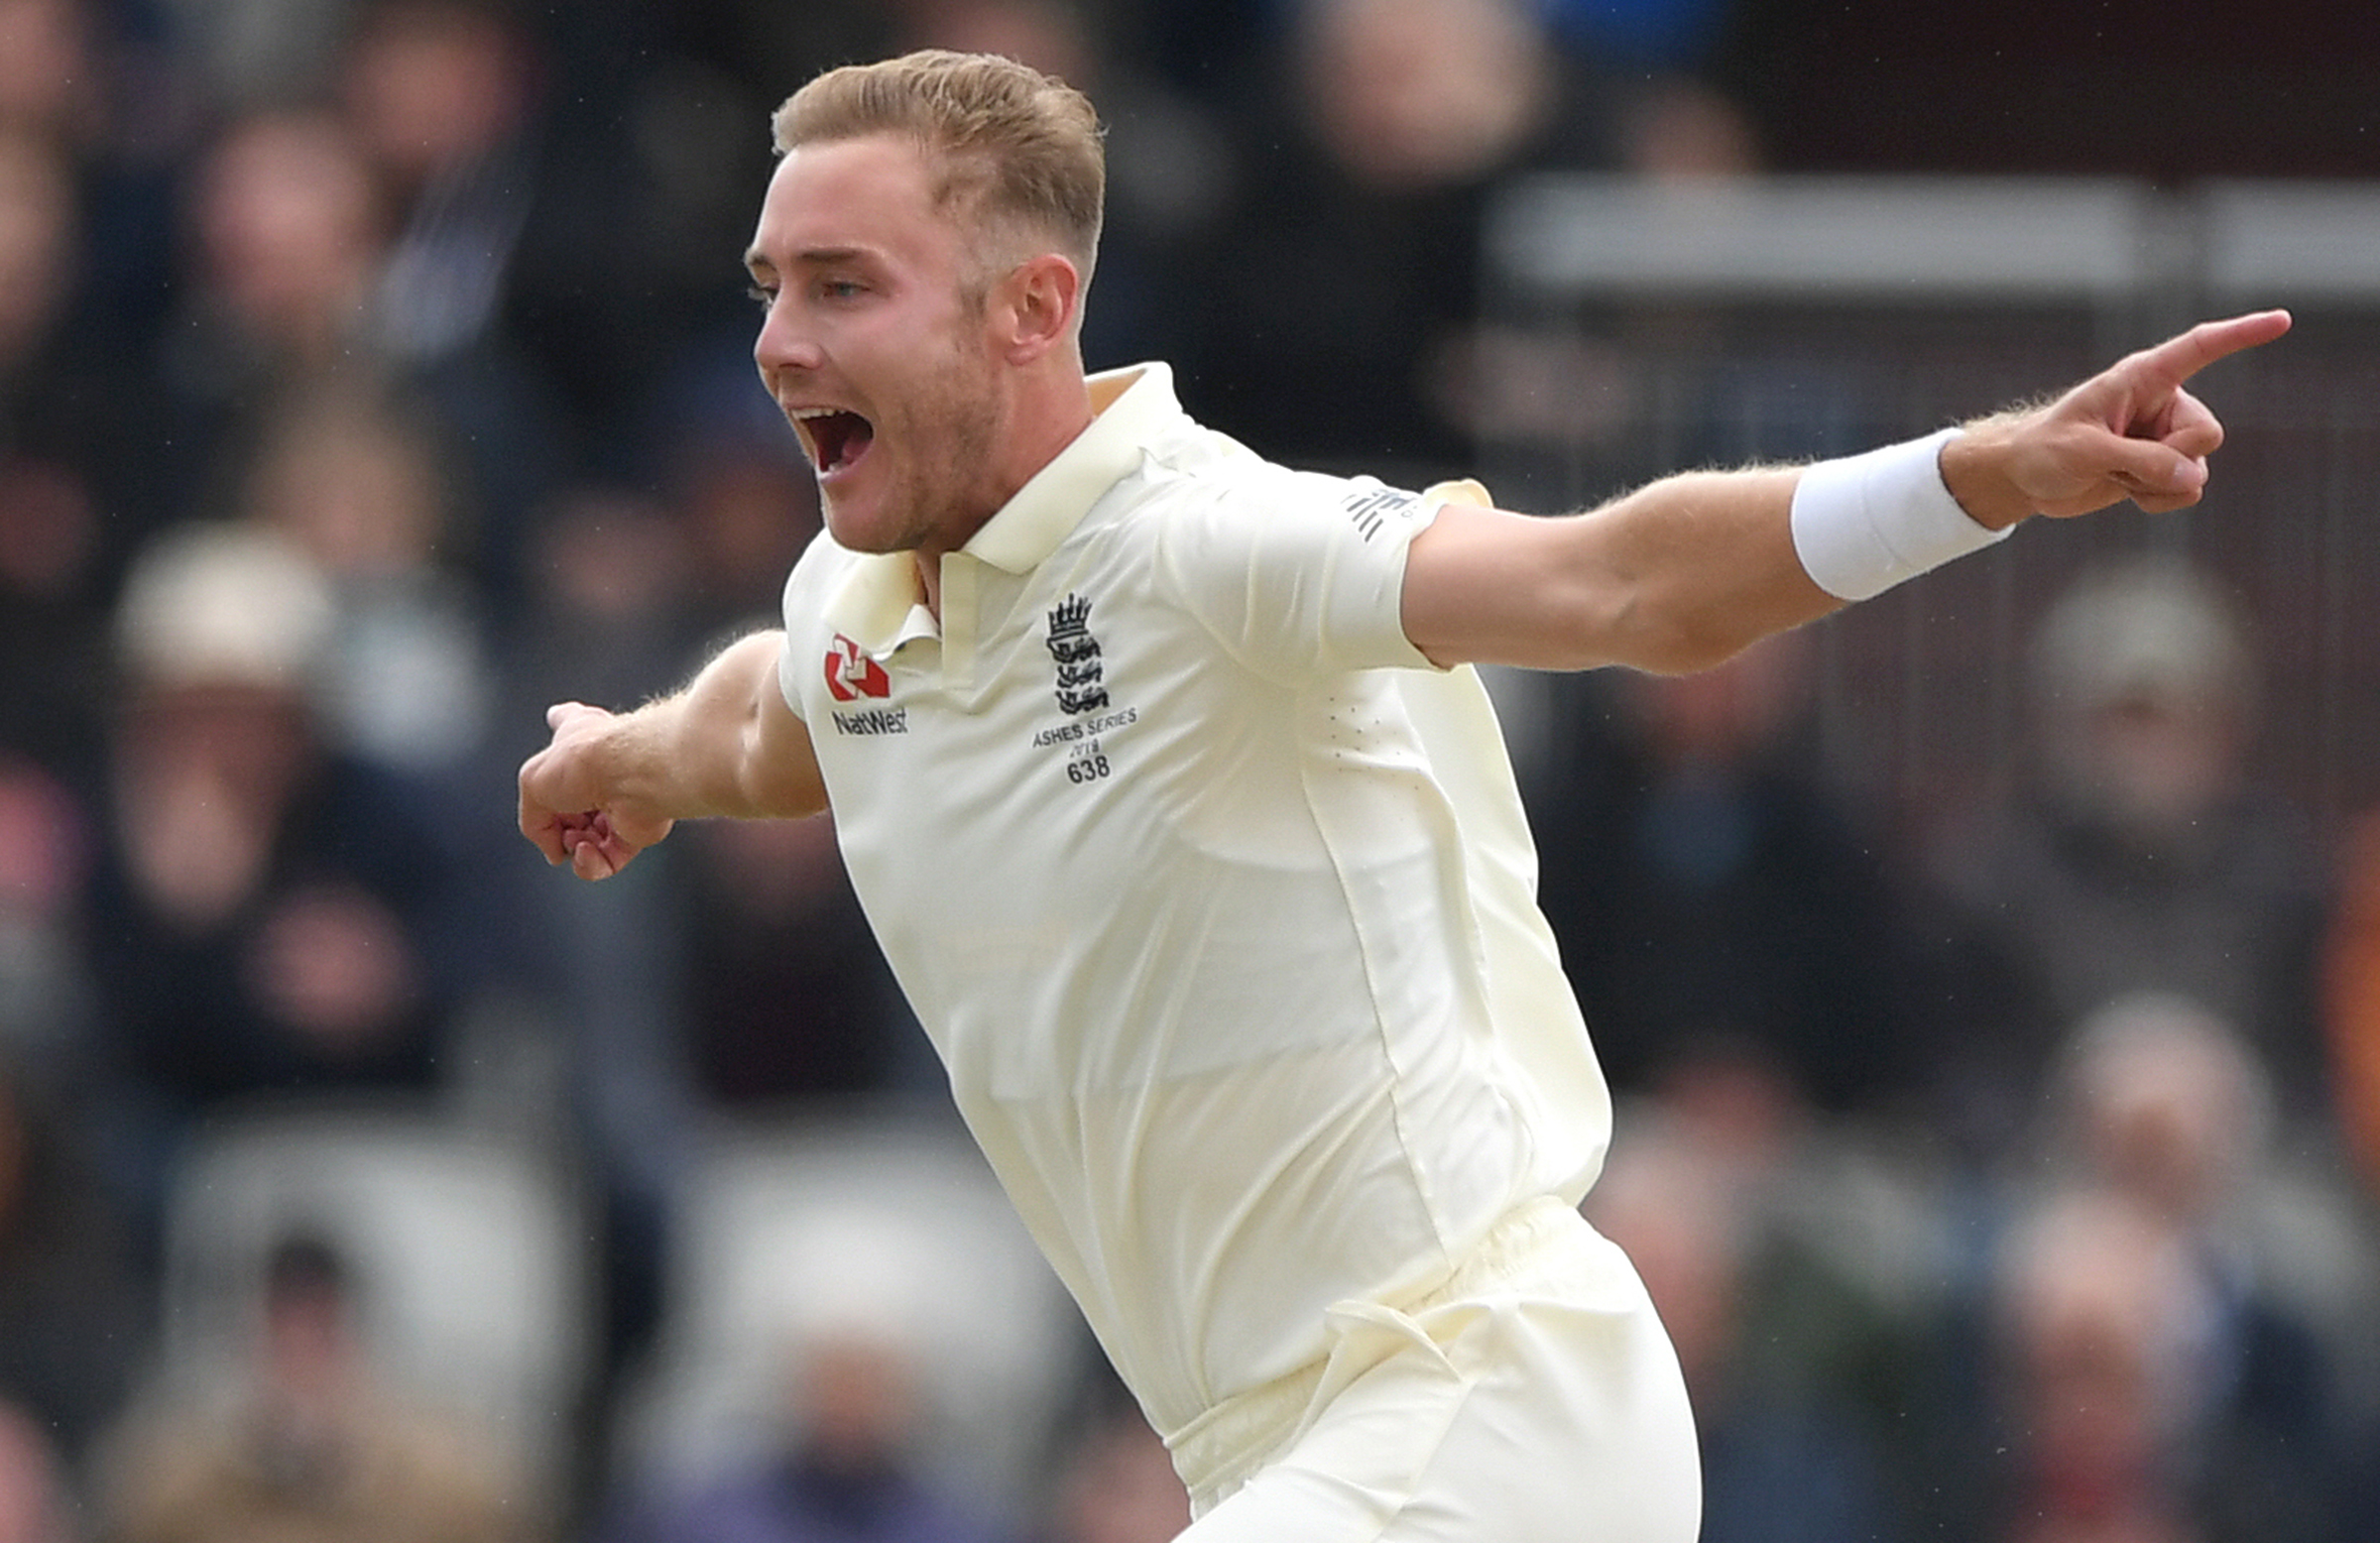 Broad celebrates the wicket of Warner with just the second ball of the Australia innings // Getty